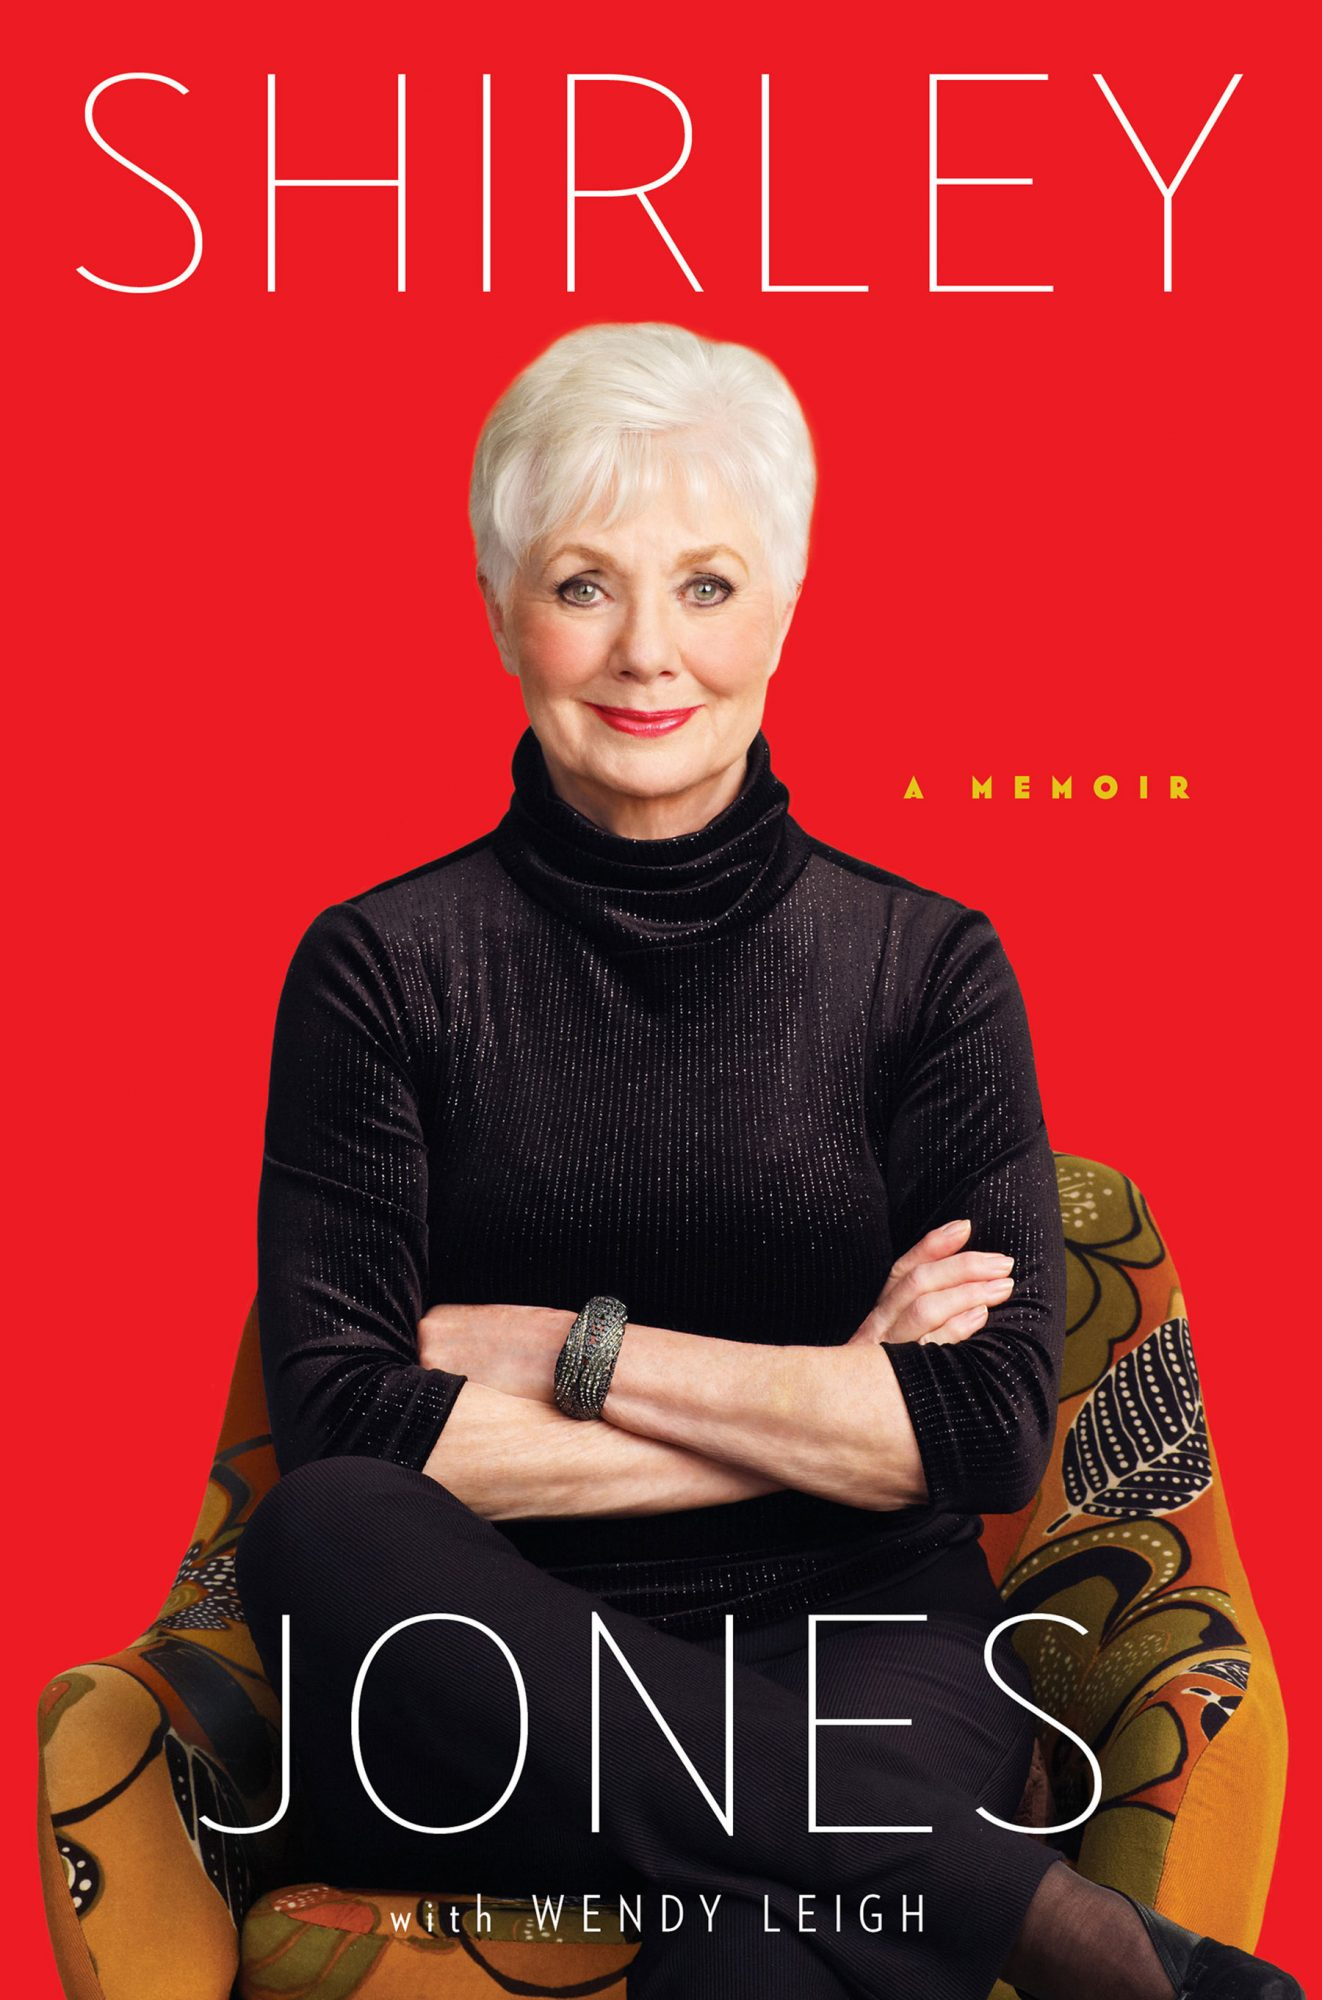 Shirley Jones: A Memoir (7/23/13)